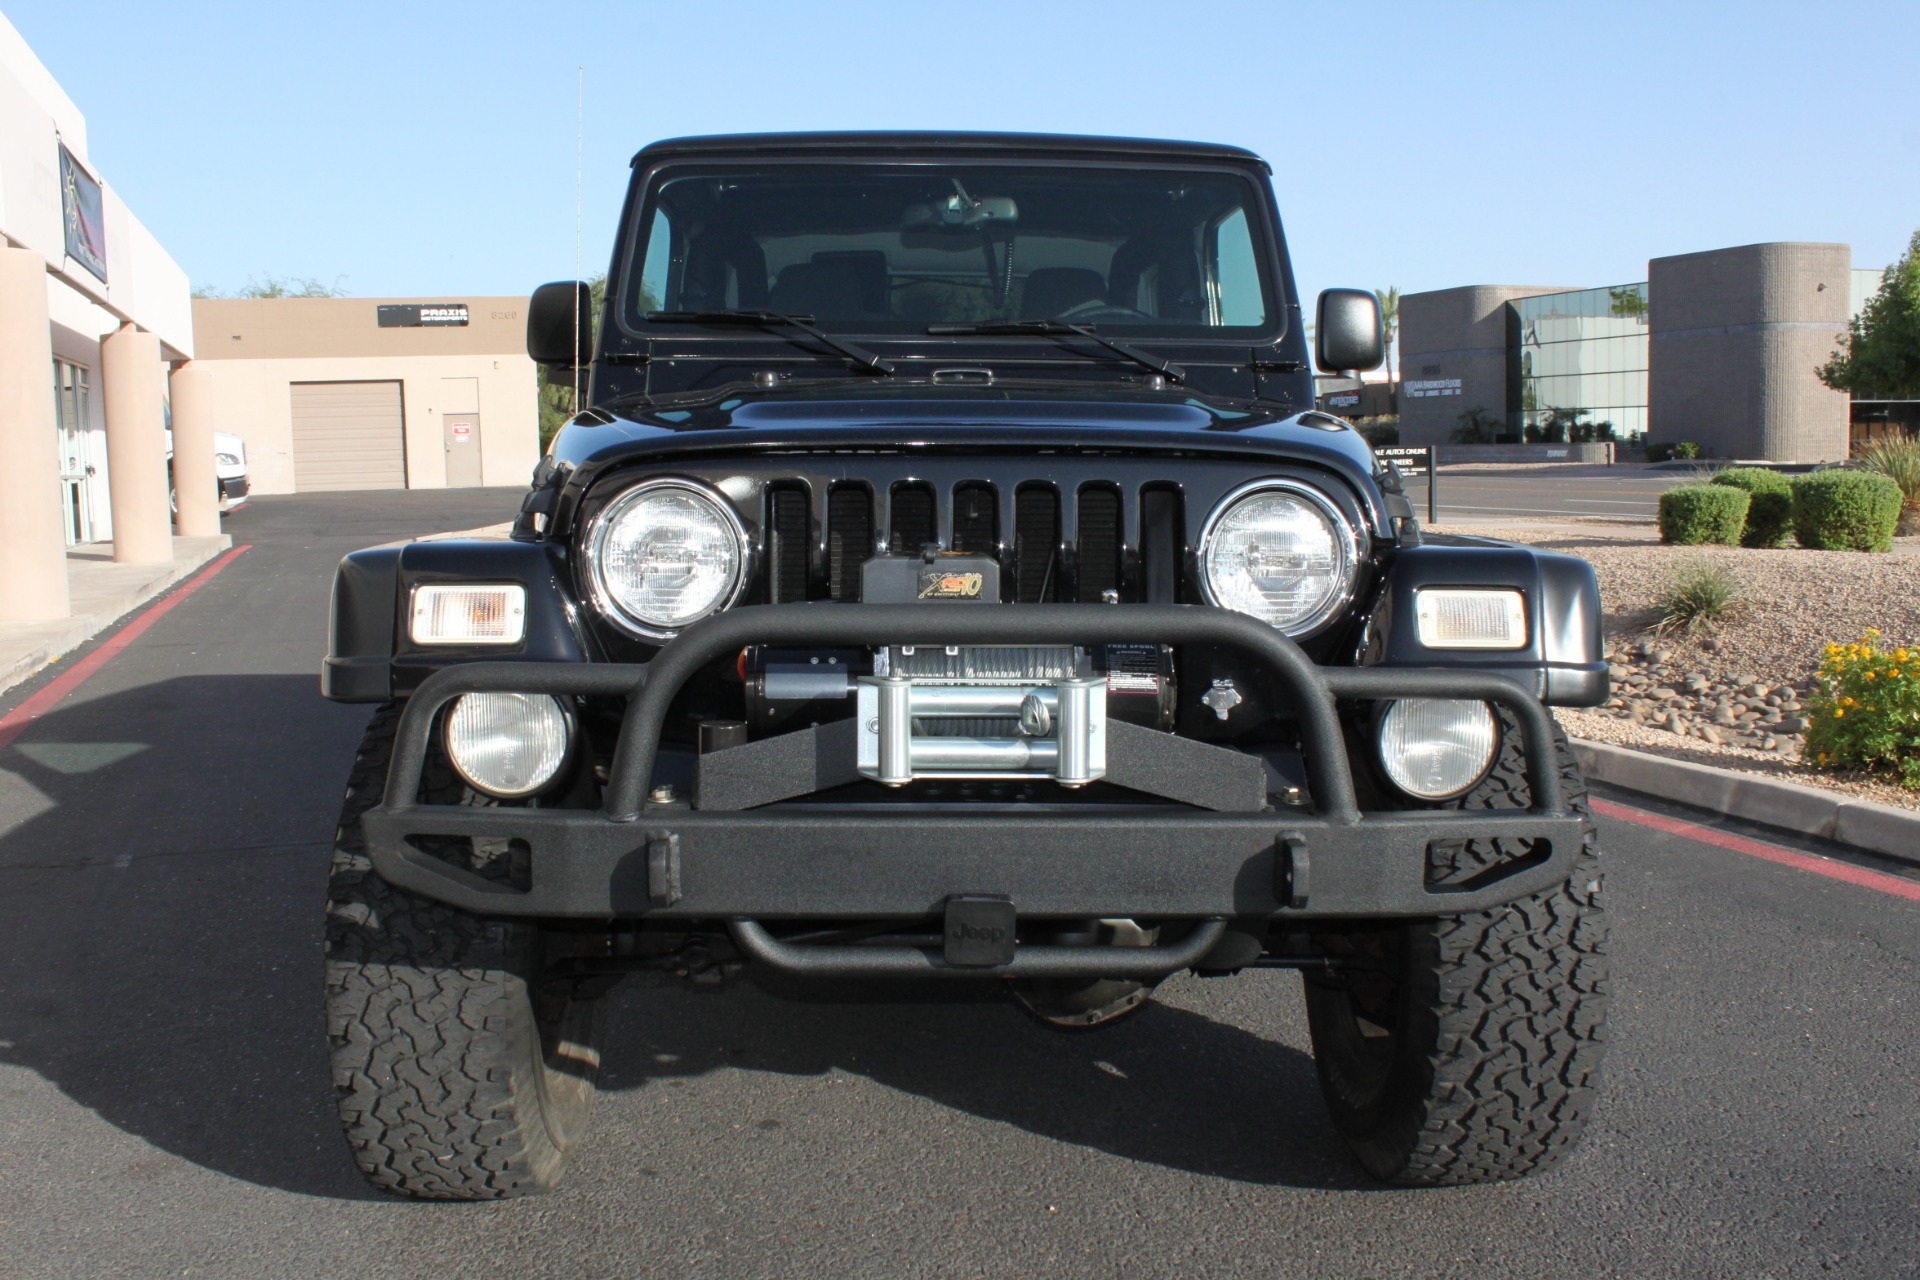 Used-2006-Jeep-Wrangler-Unlimited-Rubicon-LWB-Cherokee